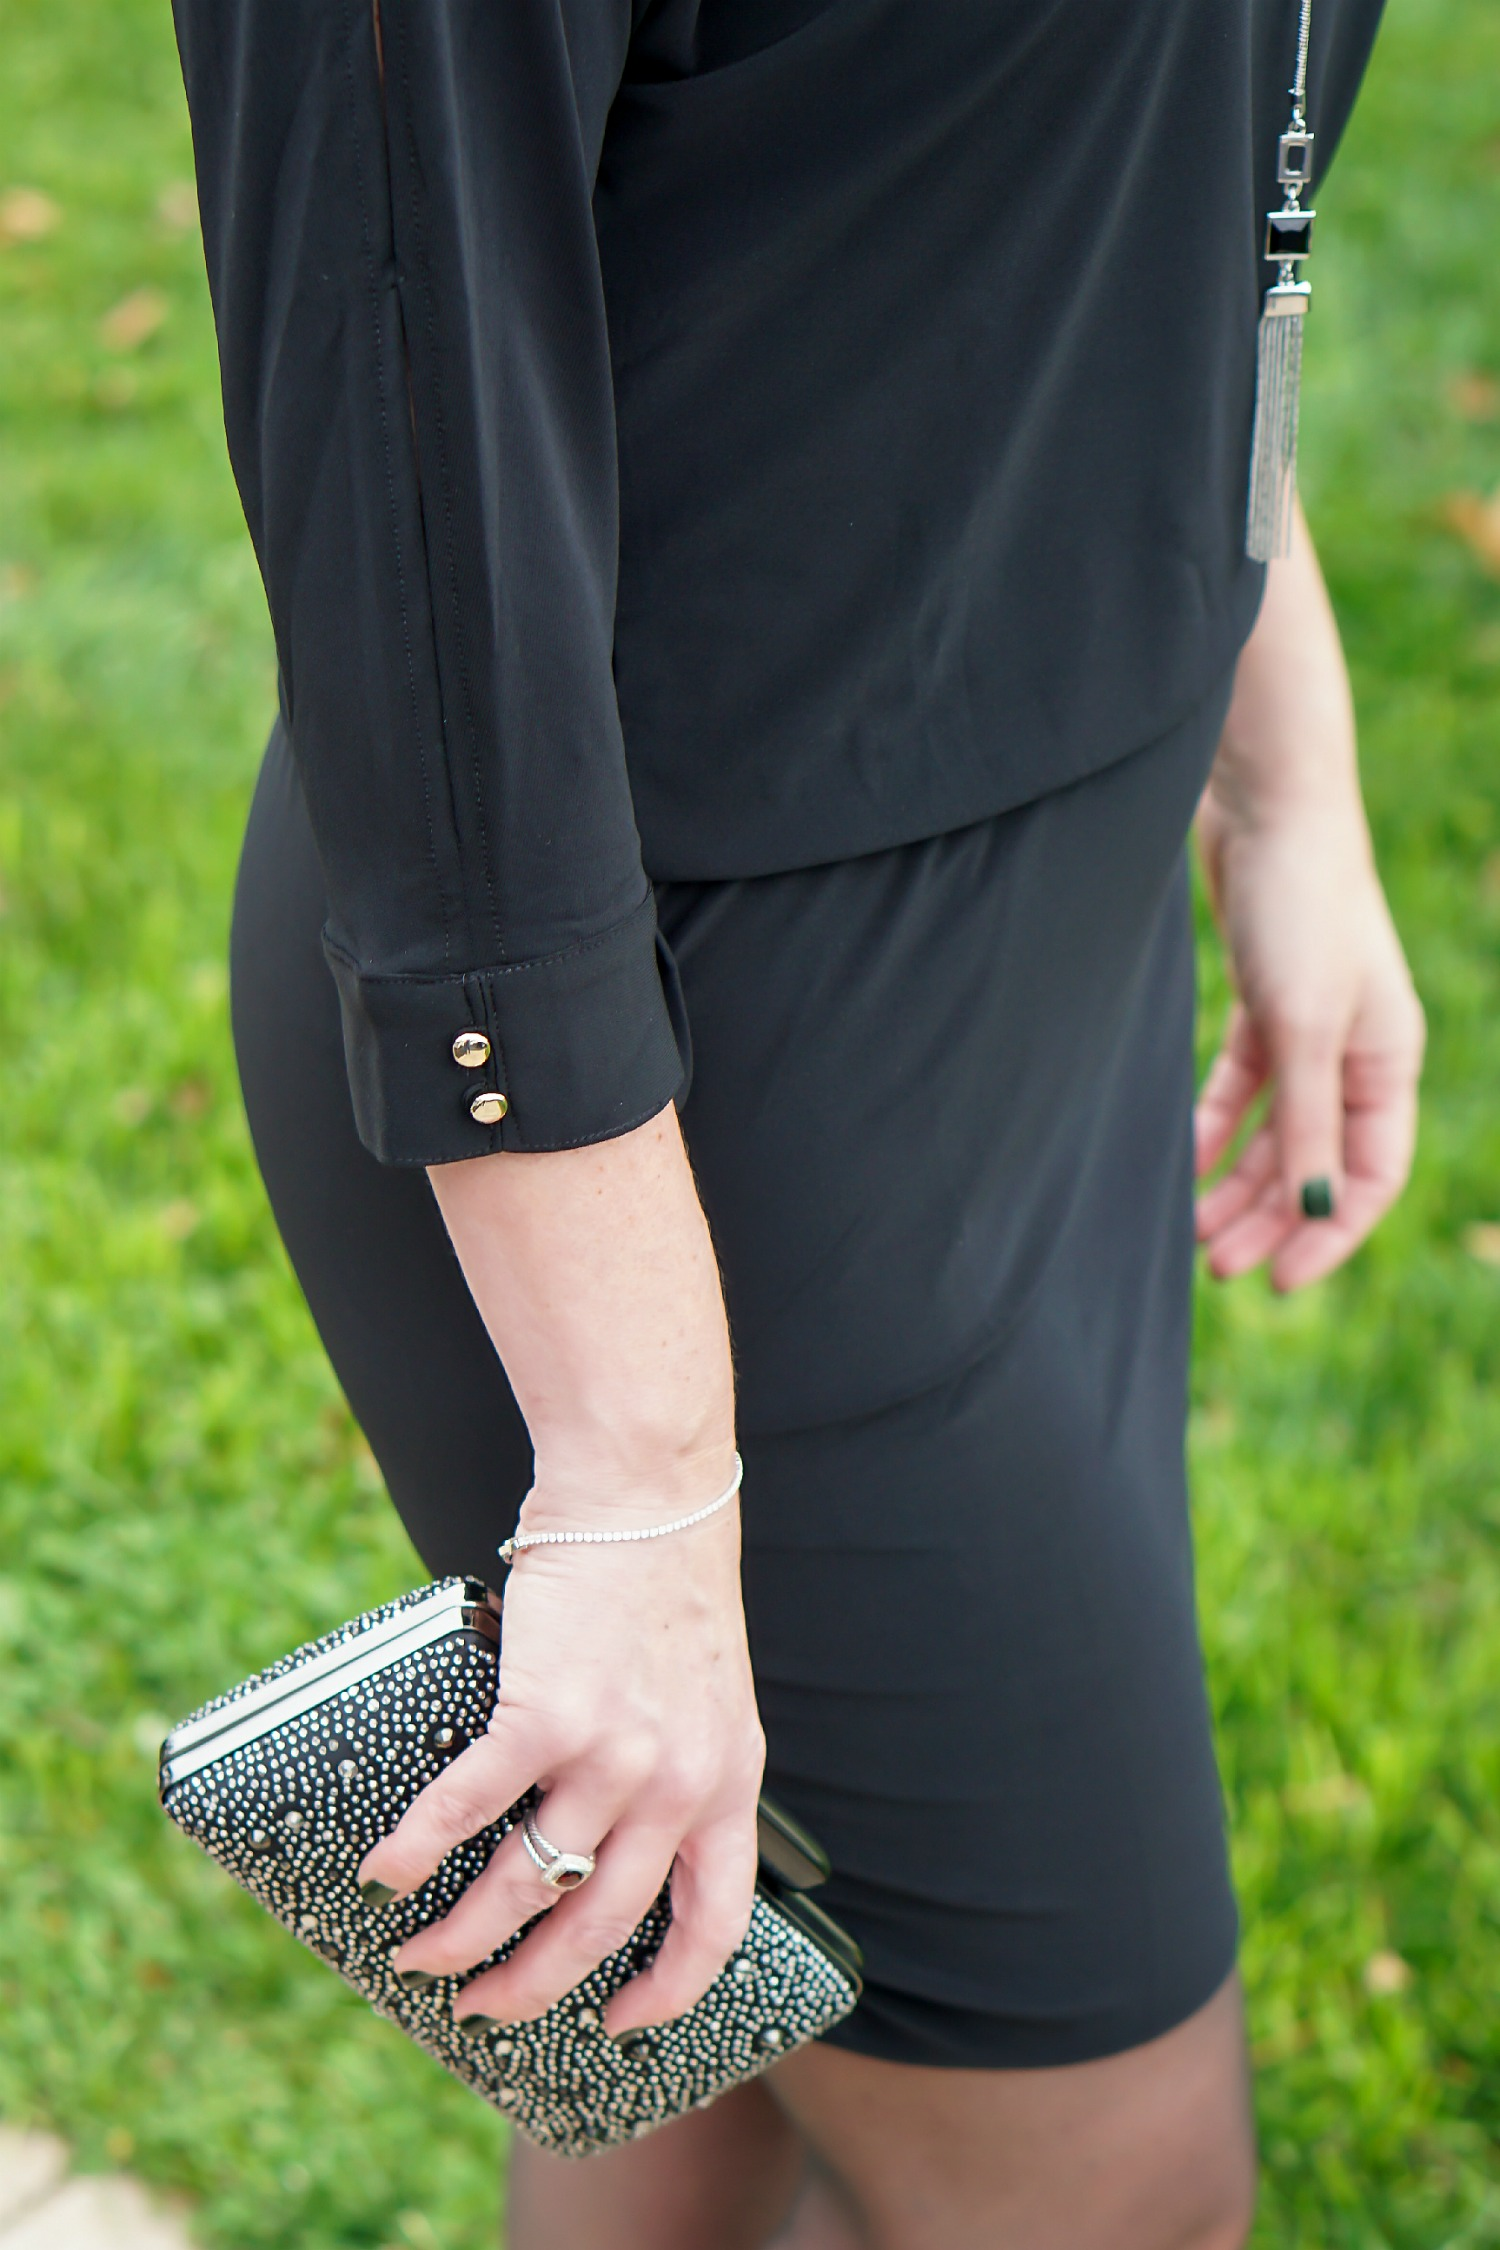 What to Wear to an Office Christmas Party: LBD with fun accessories, sheer black hose, and black suede pumps